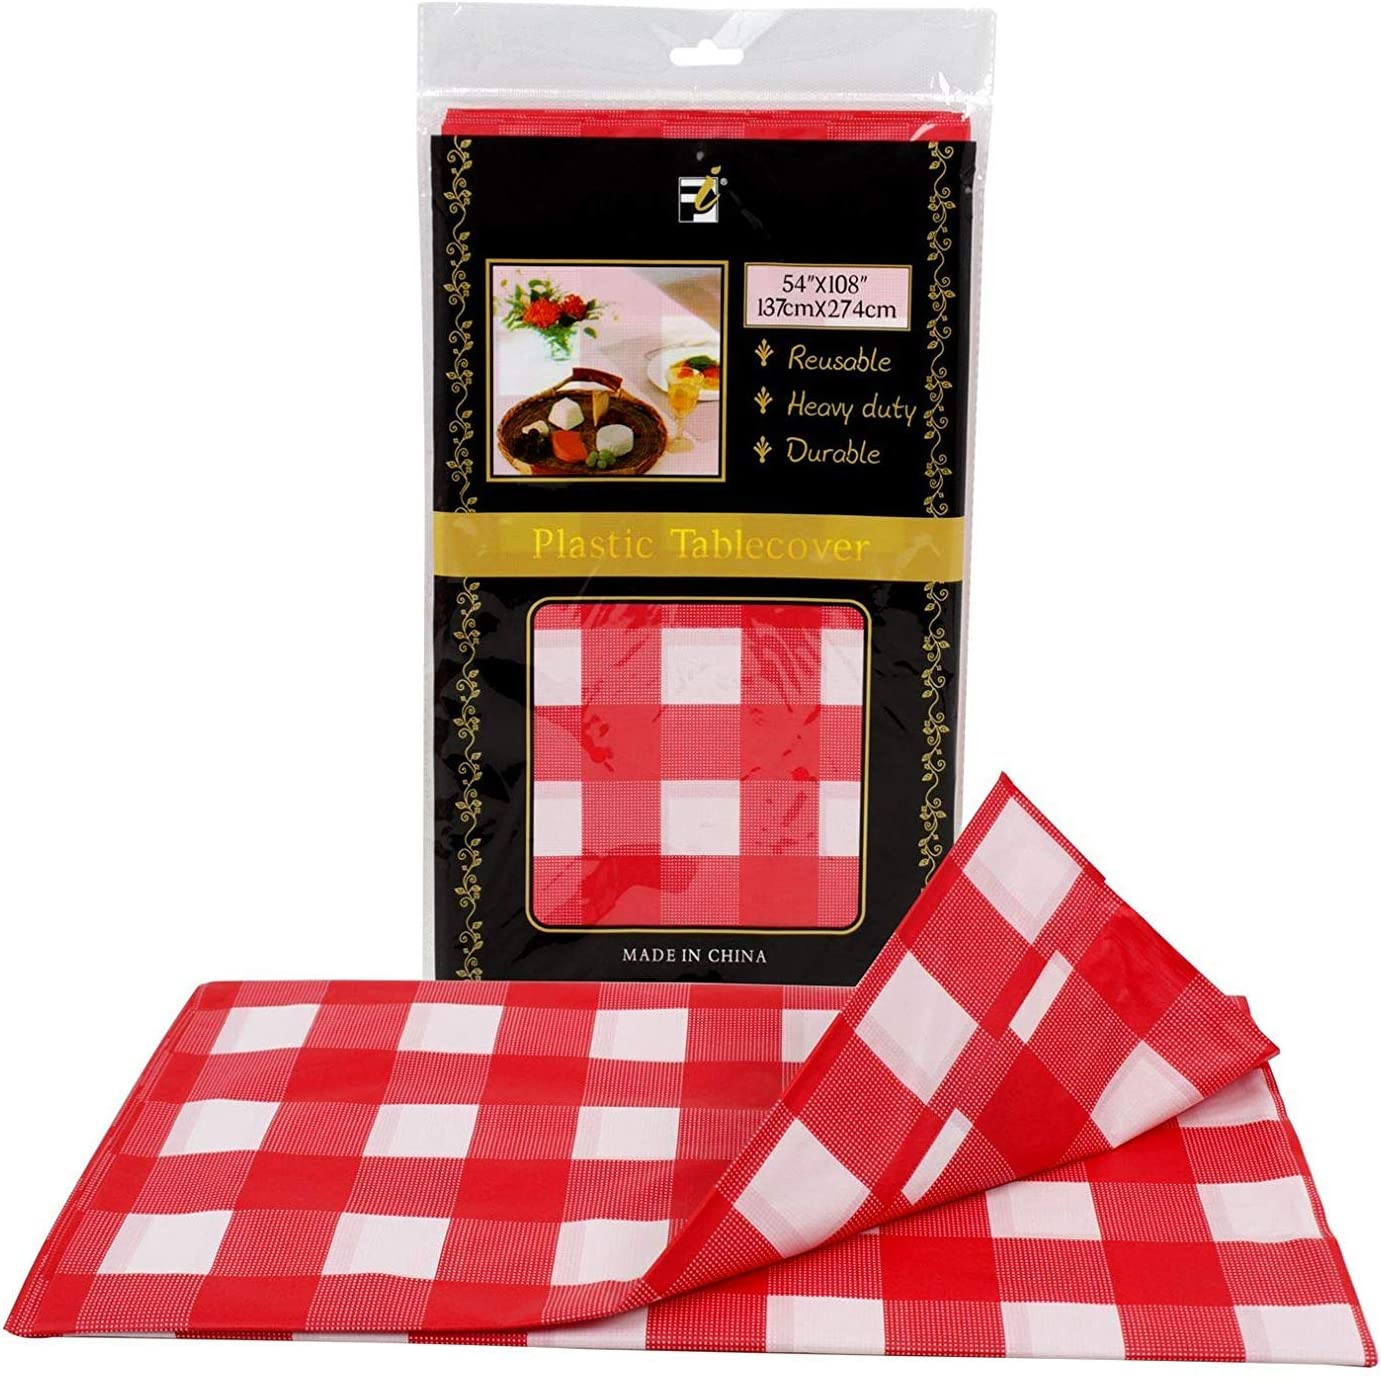 Gingham Checkered Tablecloth - Waterproof Table Cover | 12 Pack Premium Buffalo Check Cloth | 54 x 108 Inch - Washable - DIY Party Decoration for Indoor Outdoor (Red/White)